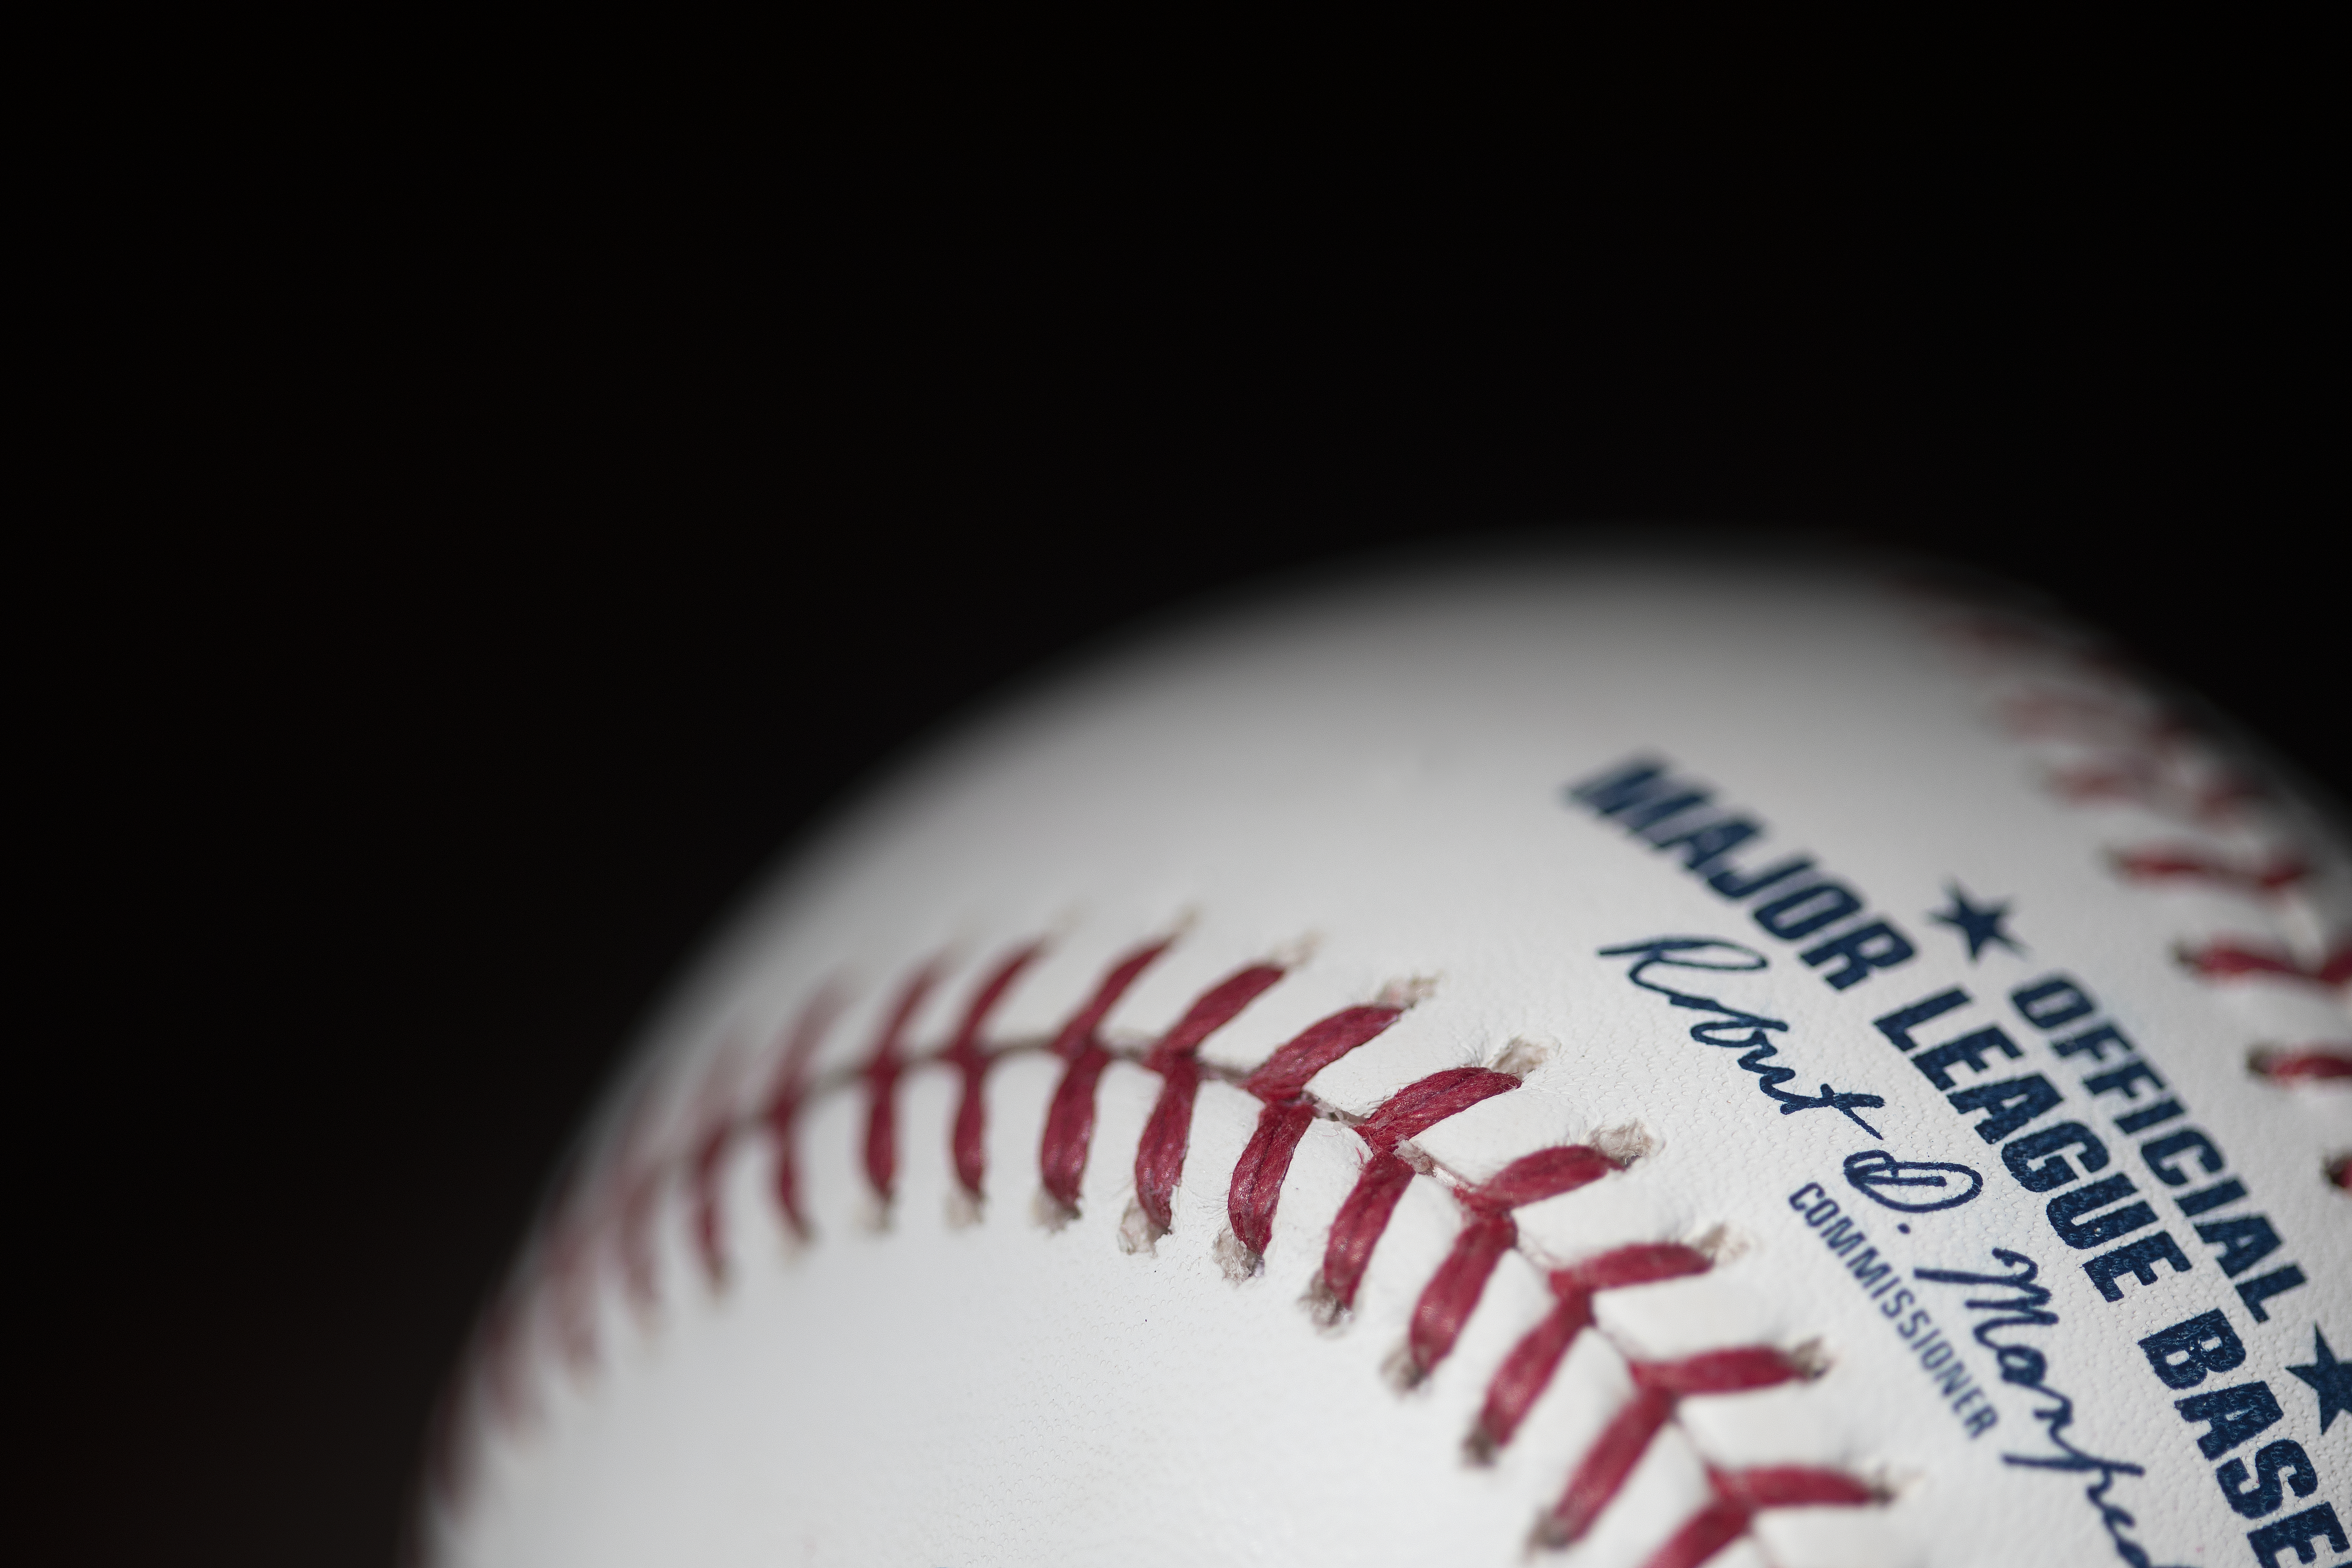 An official Rawlings Major League Baseball for the 2020 Major League Baseball season.